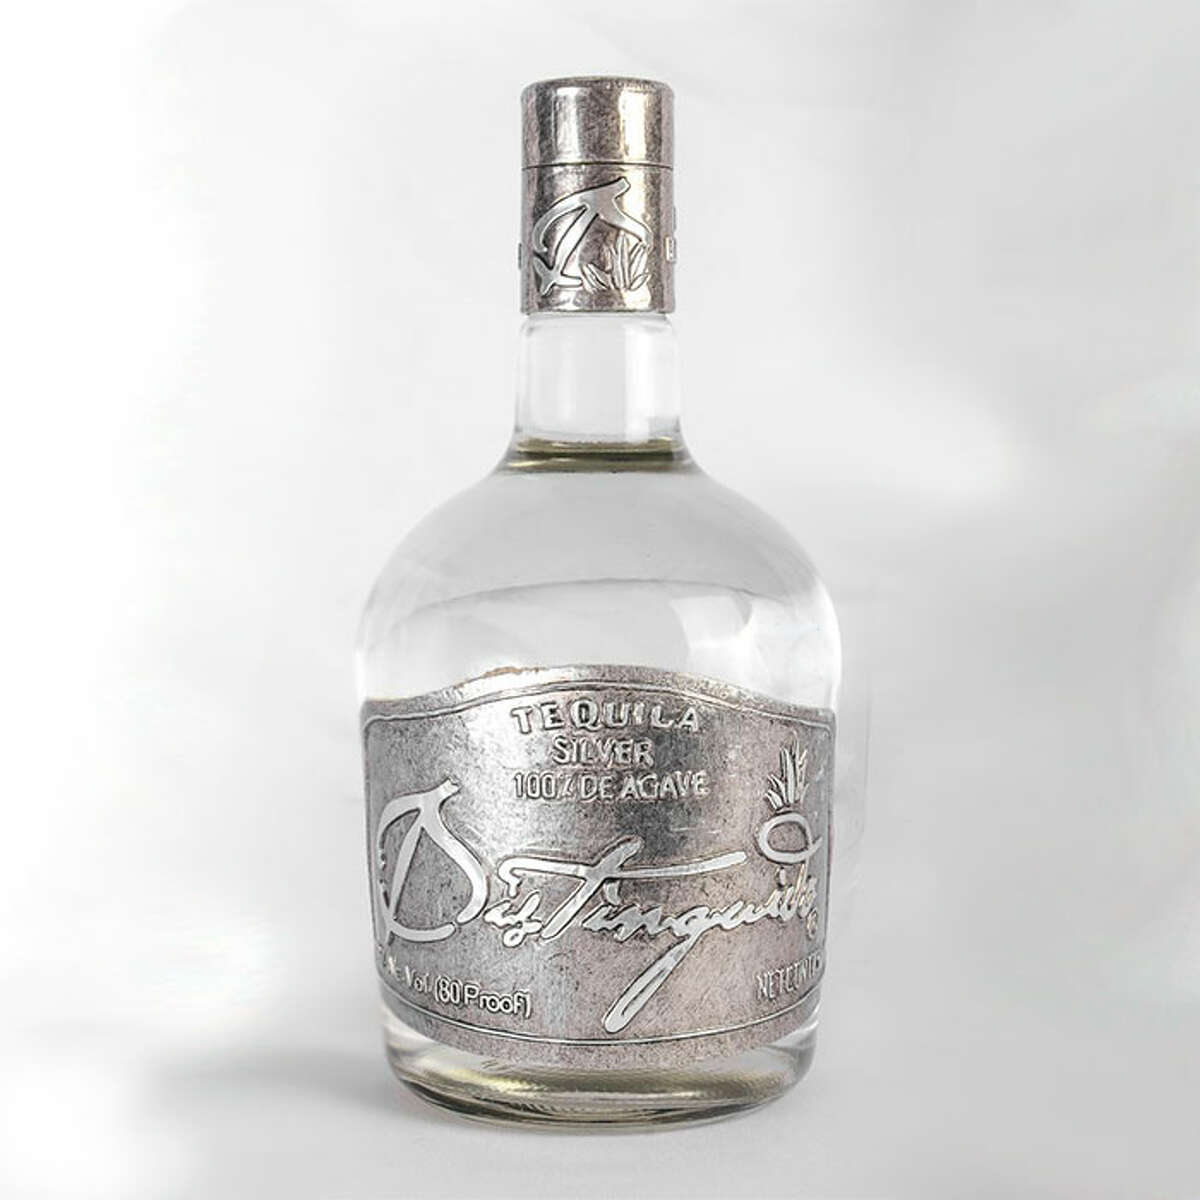 The Border Breeze is meant to be a refreshing cocktail for those hot summer Laredo days. To start off, putTequila Distinguido Silver into the mix